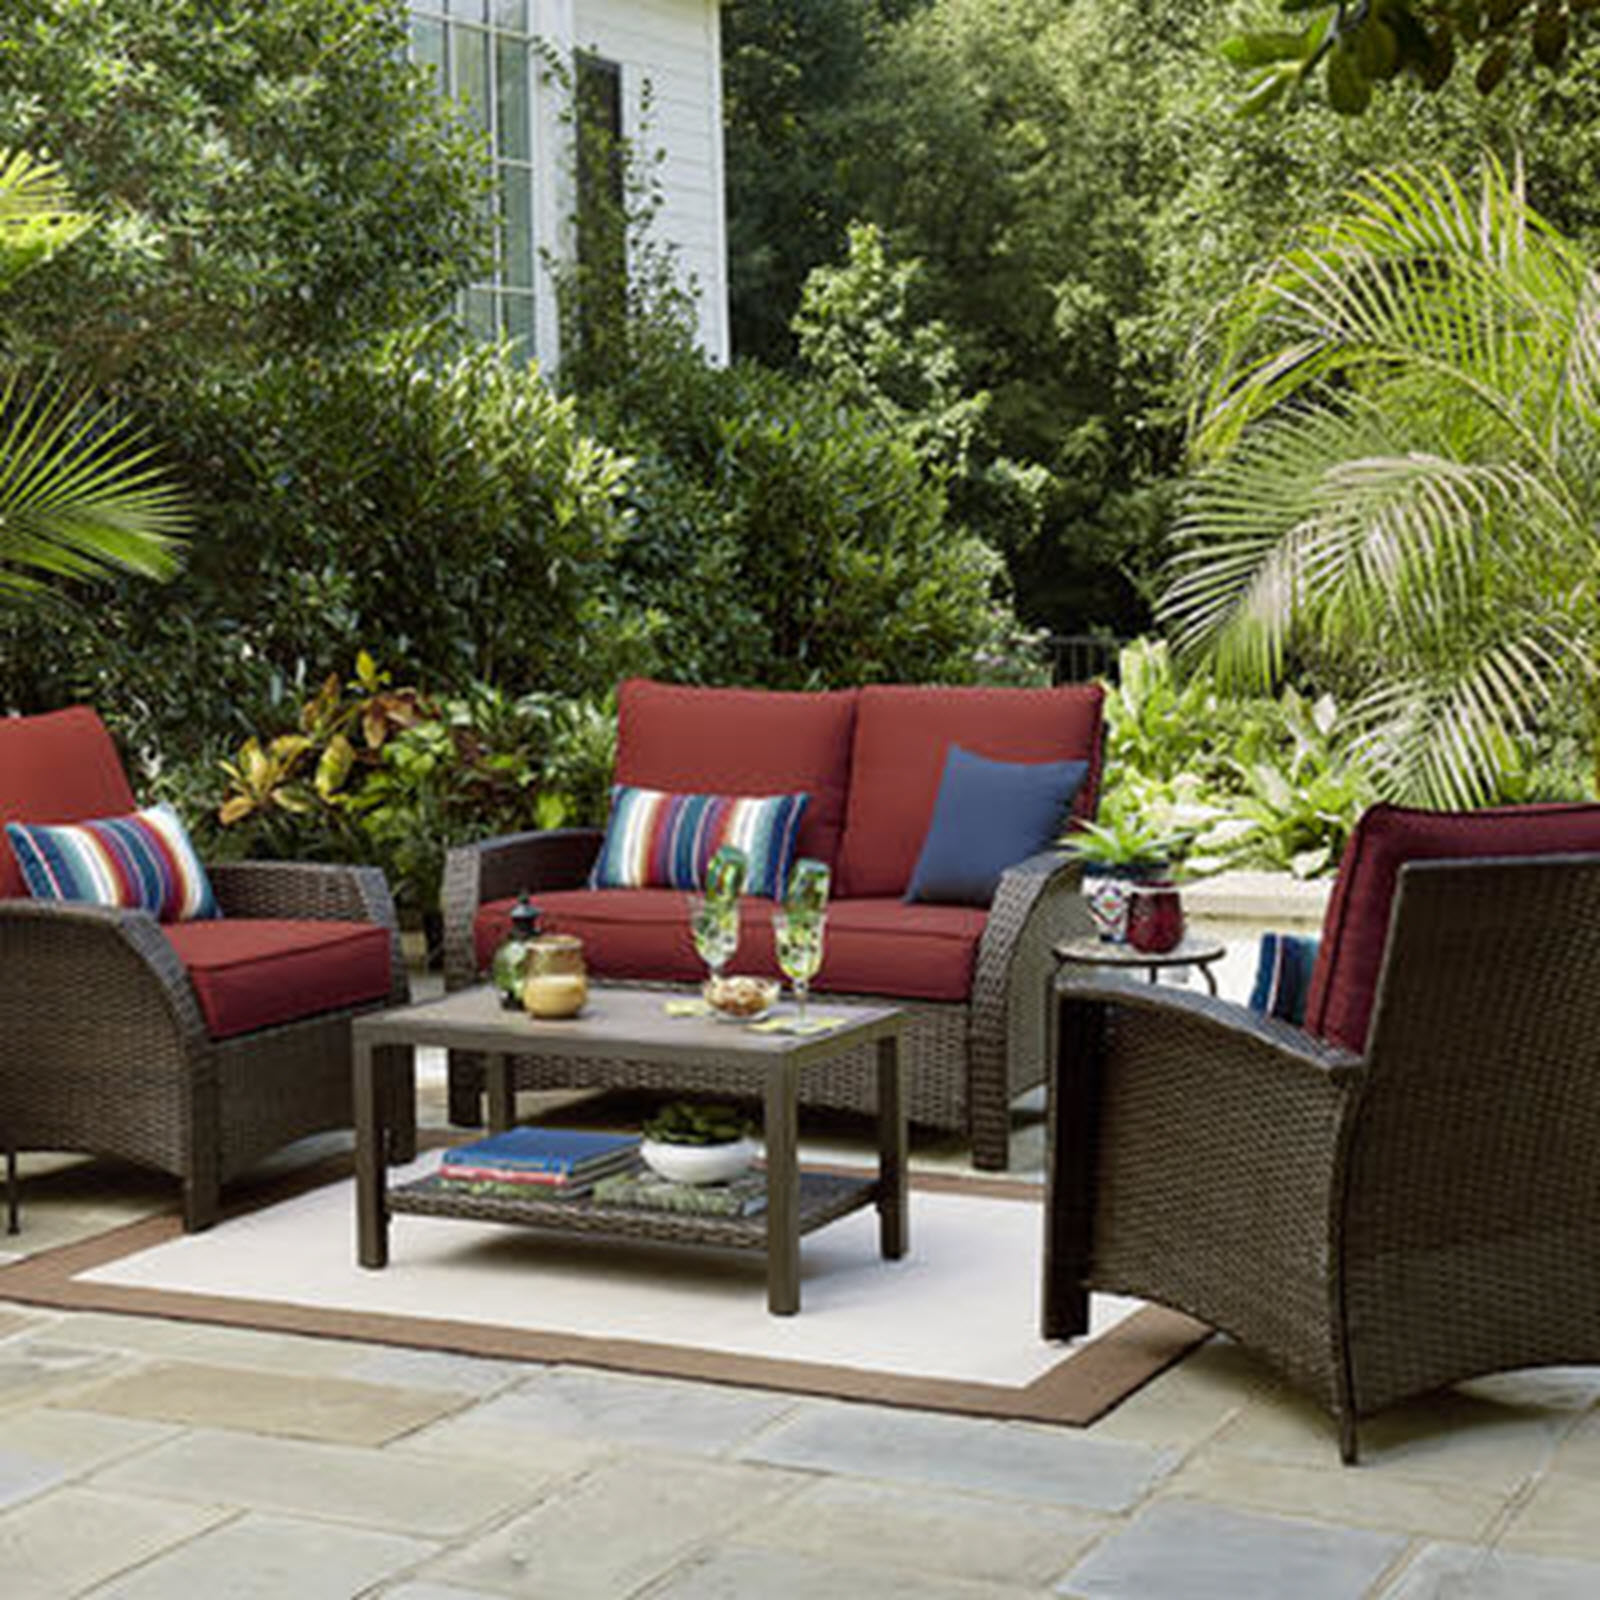 Sutton Rowe Williamsport 4 Pc. Wicker Seating Set